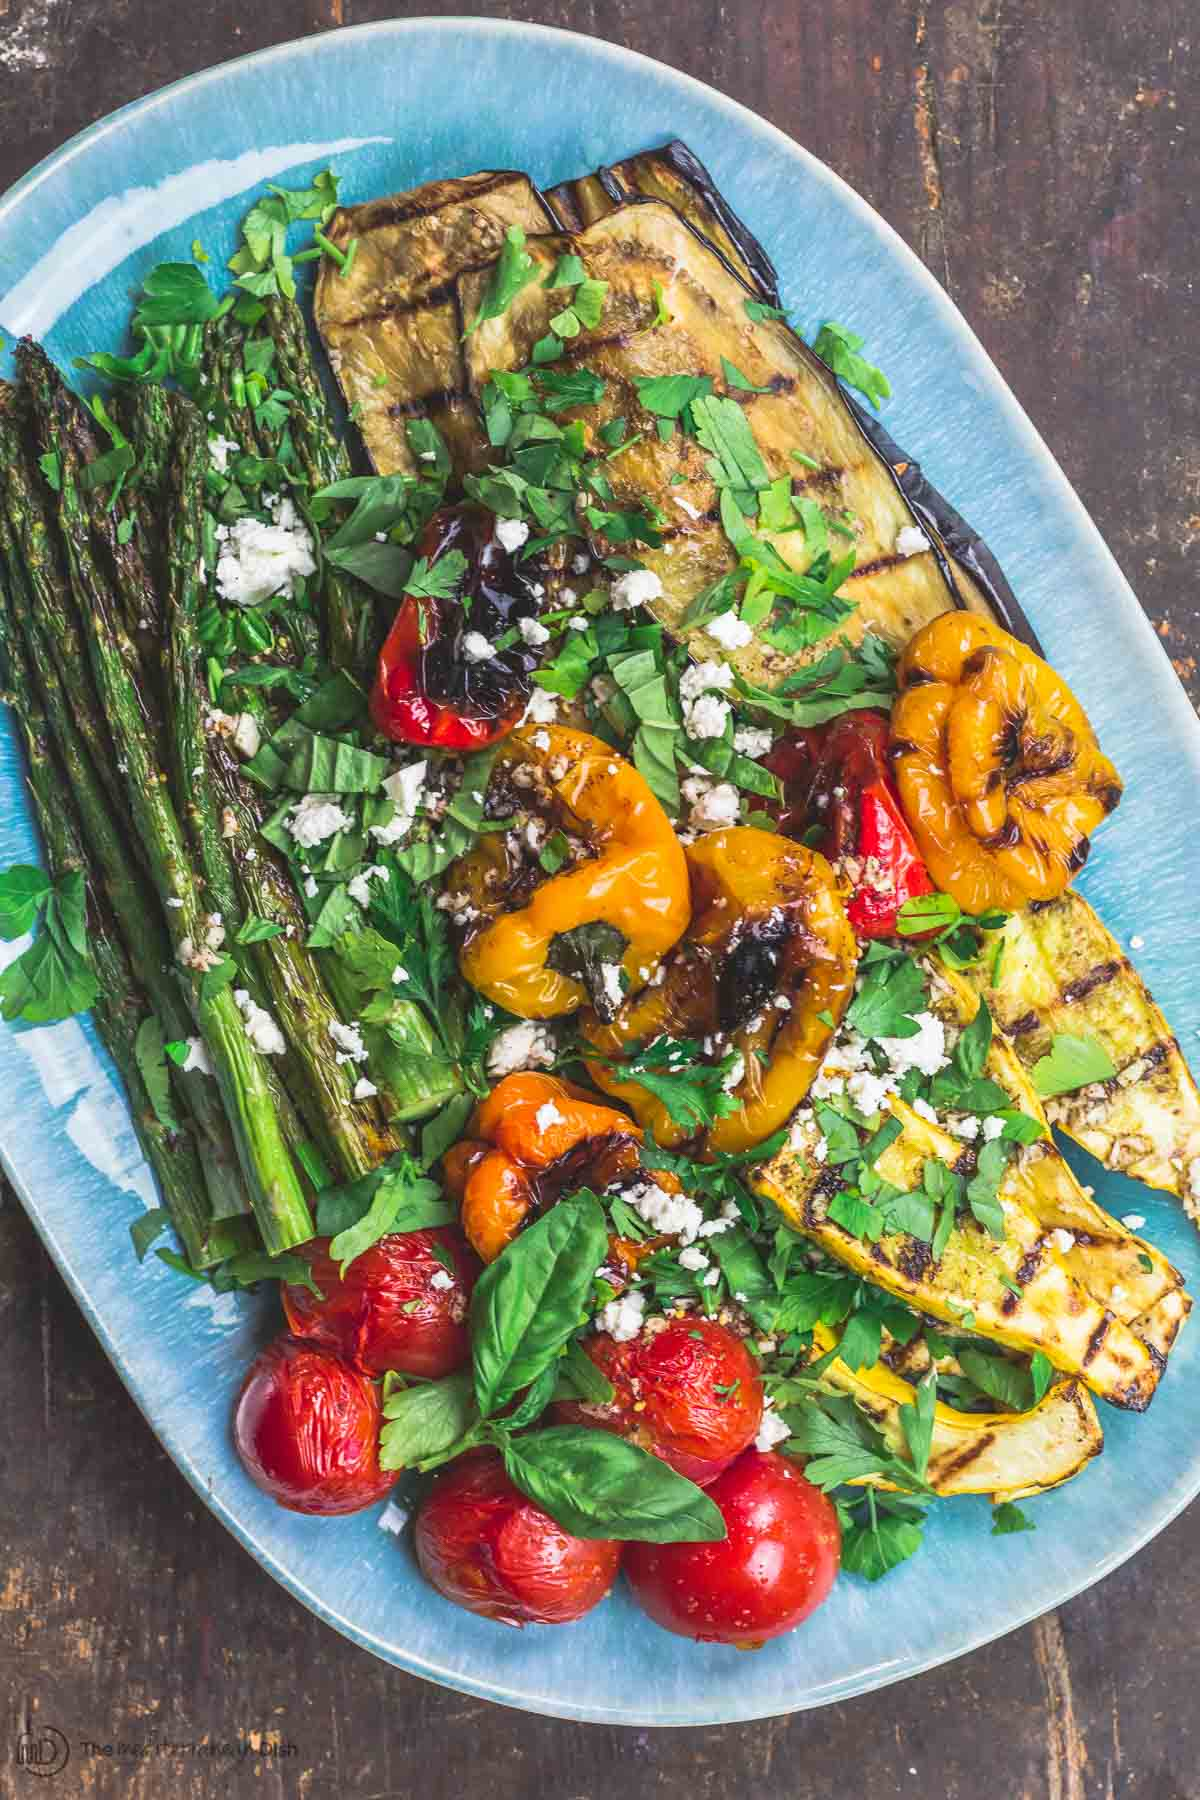 Grilled Vegetables Platter topped with Mediterranean dressing, fresh herbs and feta cheese